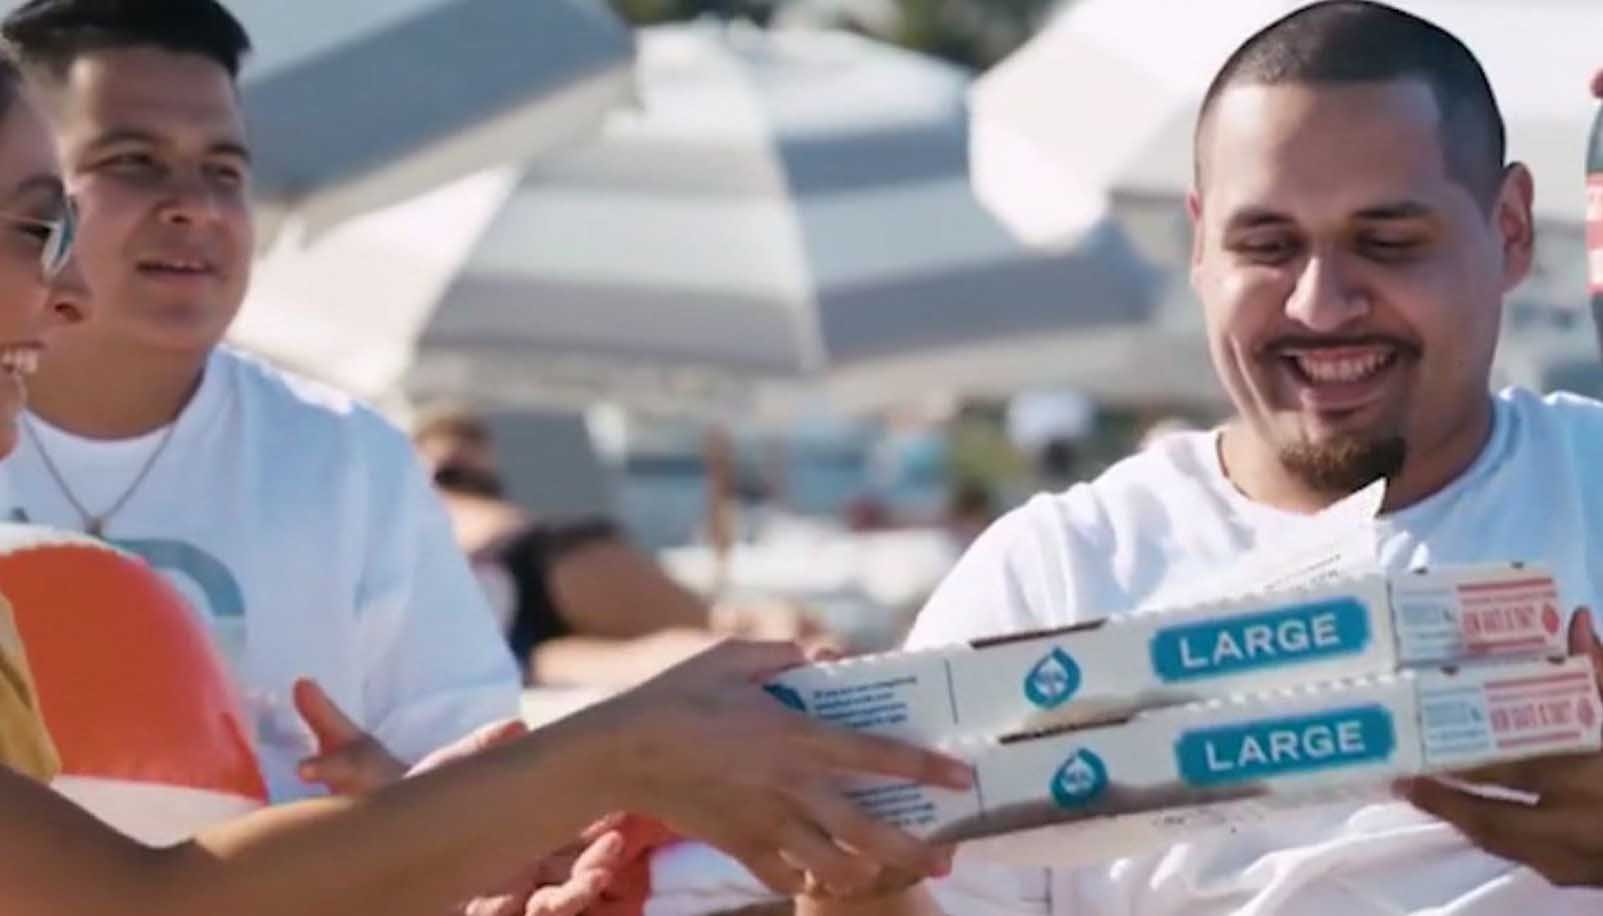 Domino's will now bring a pizza to you at a beach or a park. (Source: CNN/Domino's)